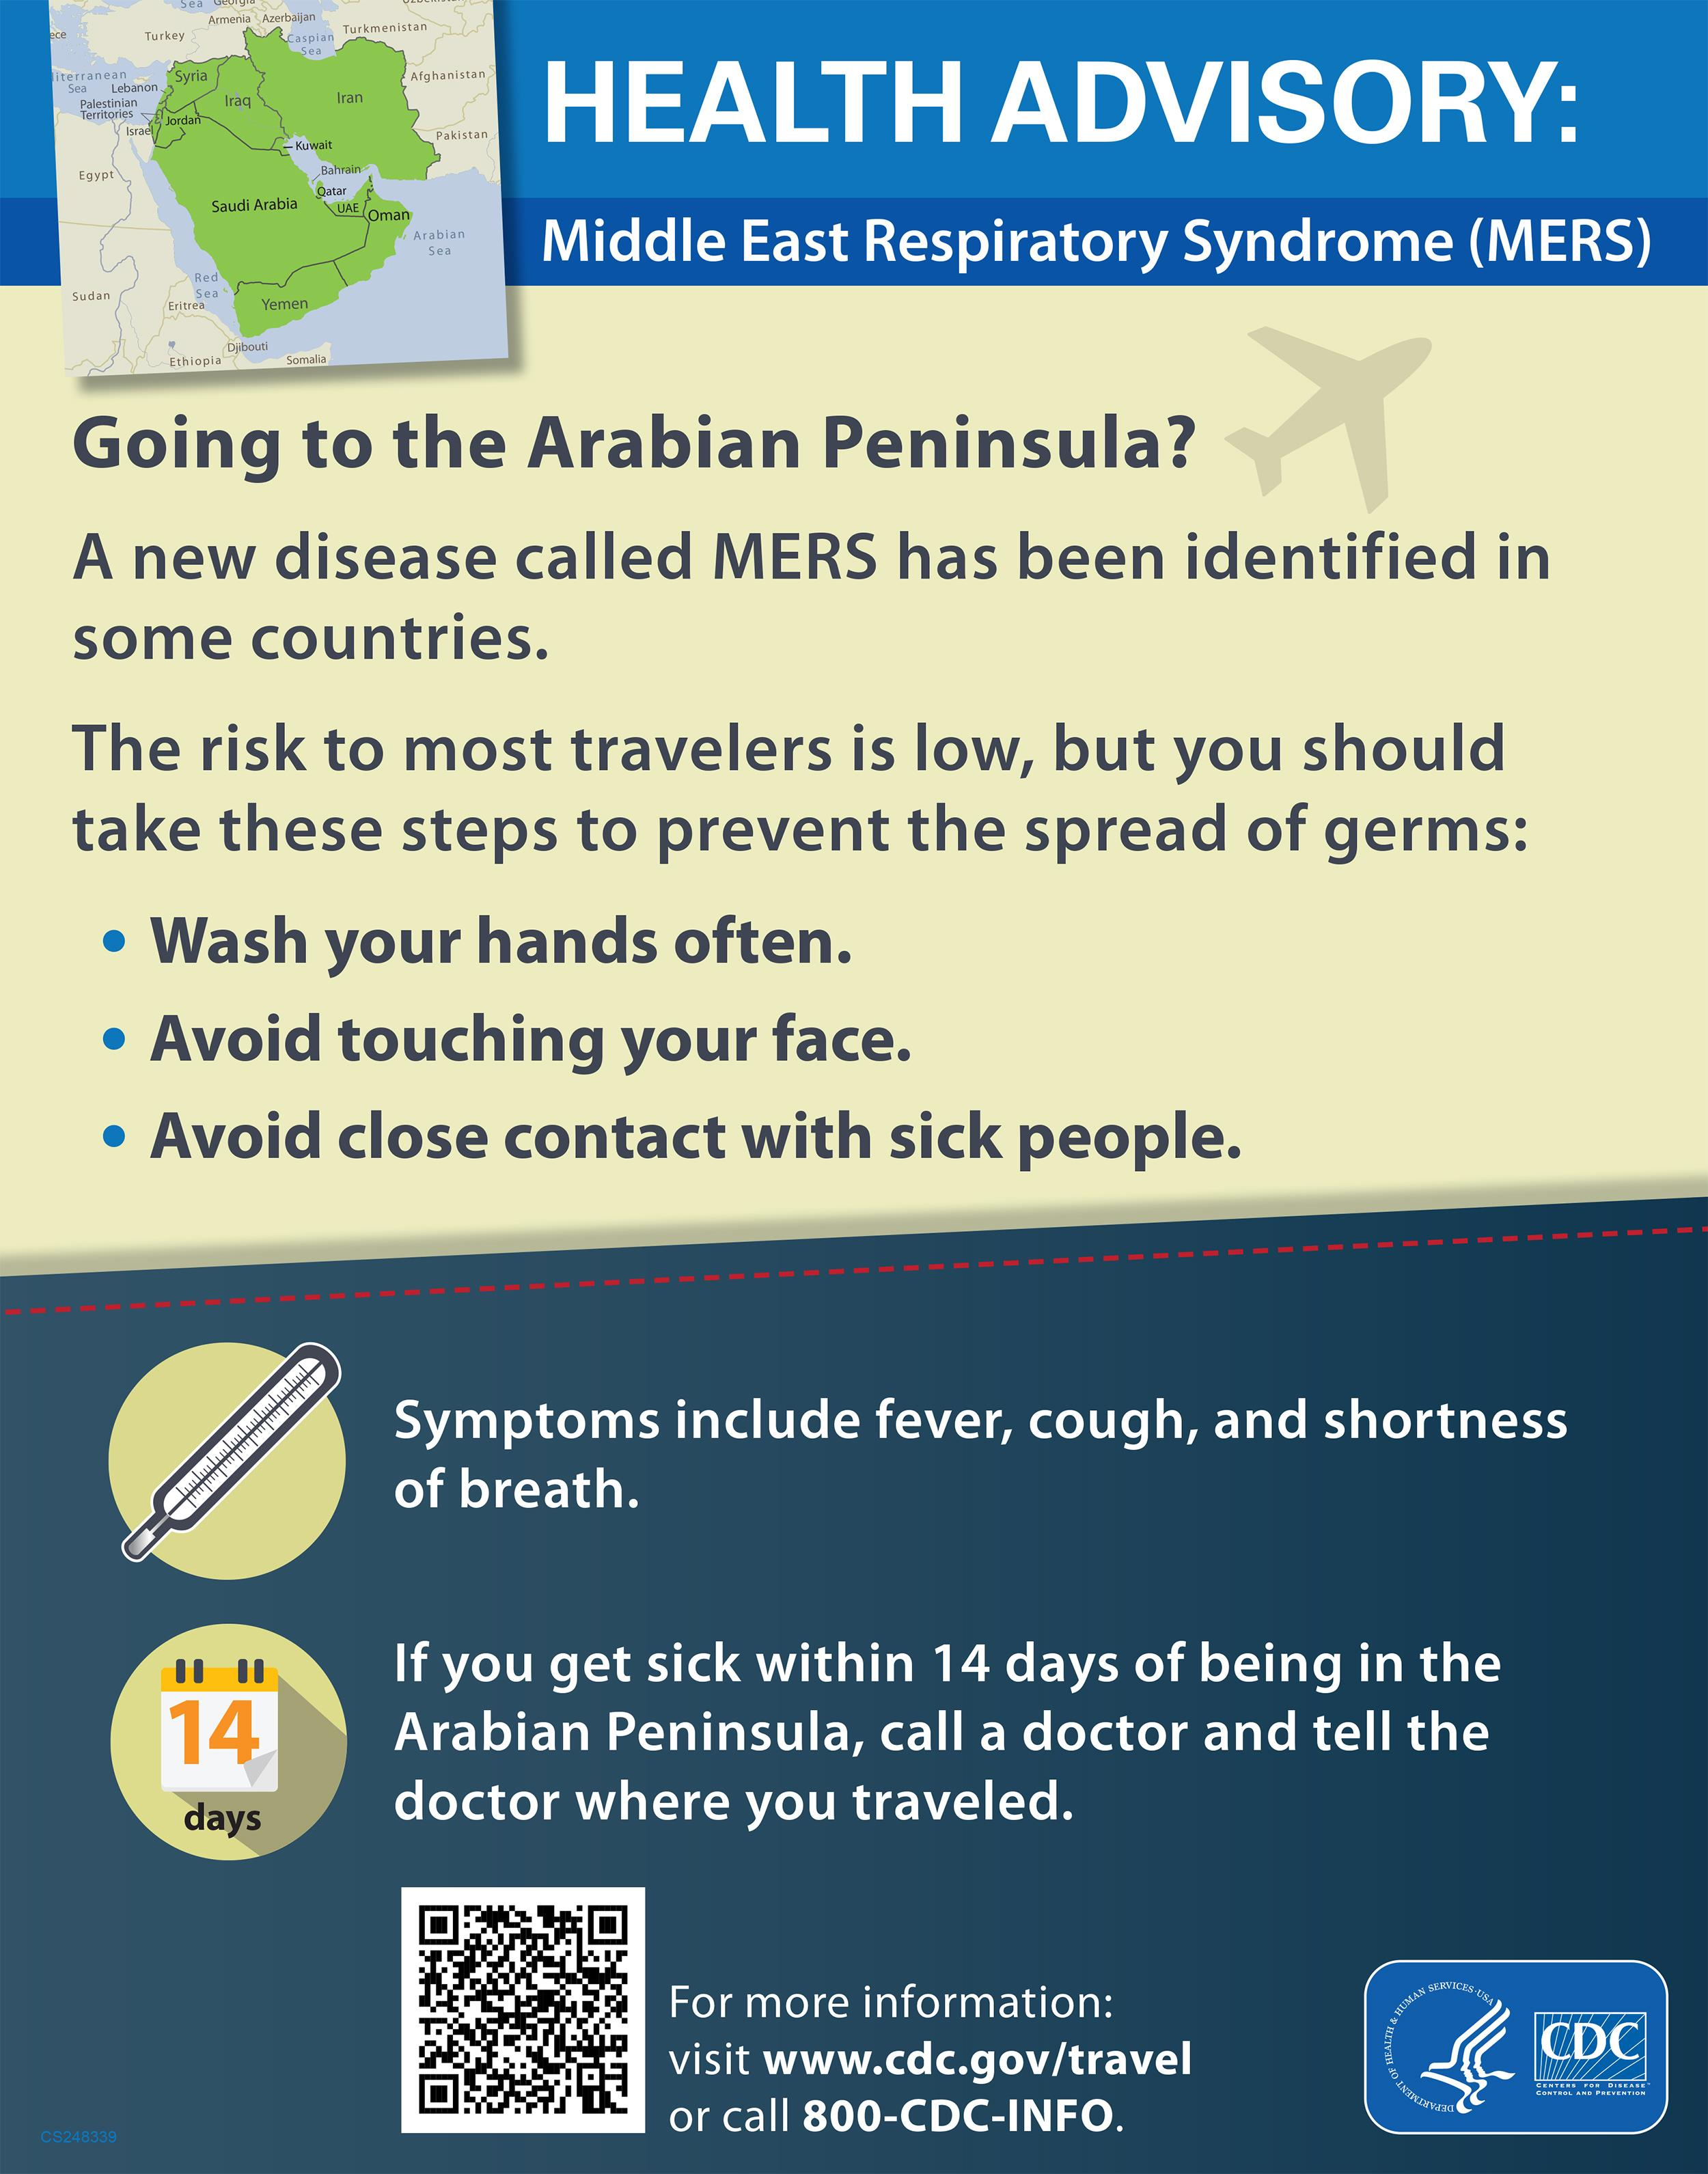 Image: A health advisory from the CDC regarding MERS